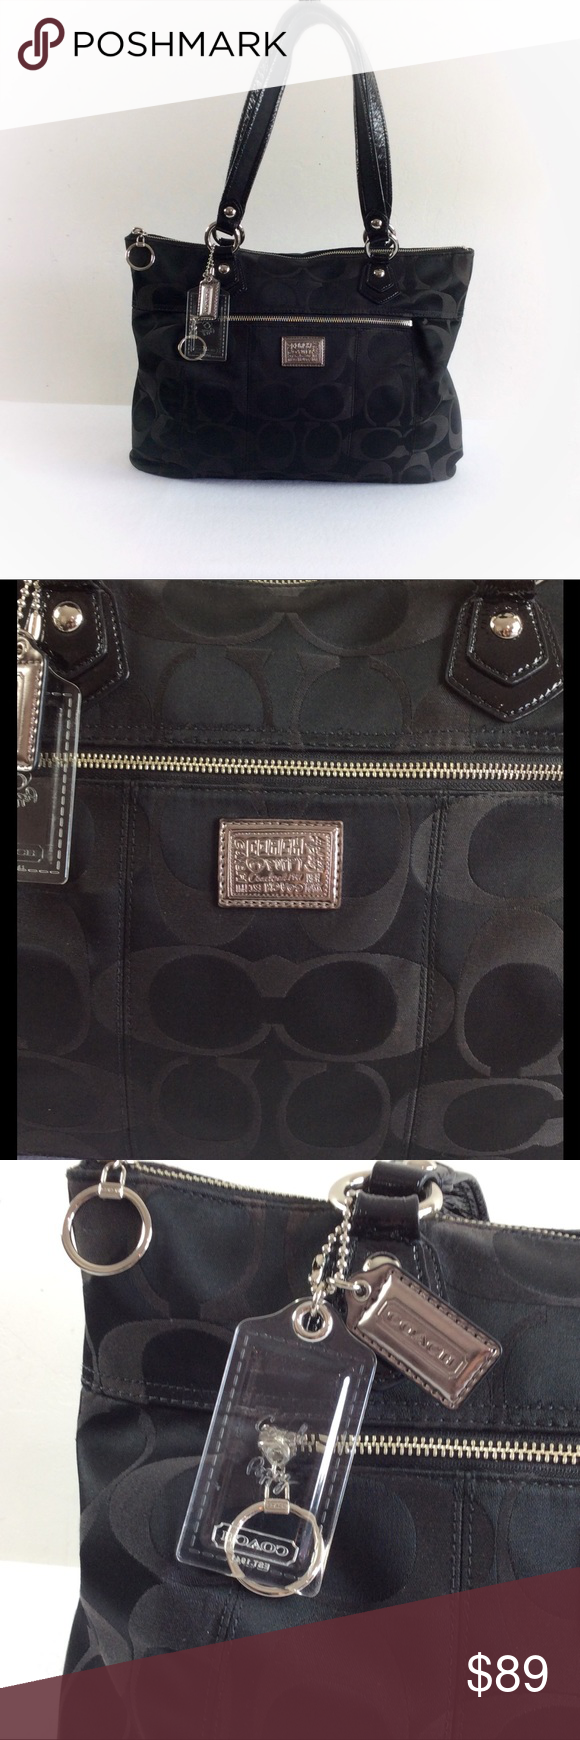 REAL LEATHER GROOVY BAG | GUESS.eu